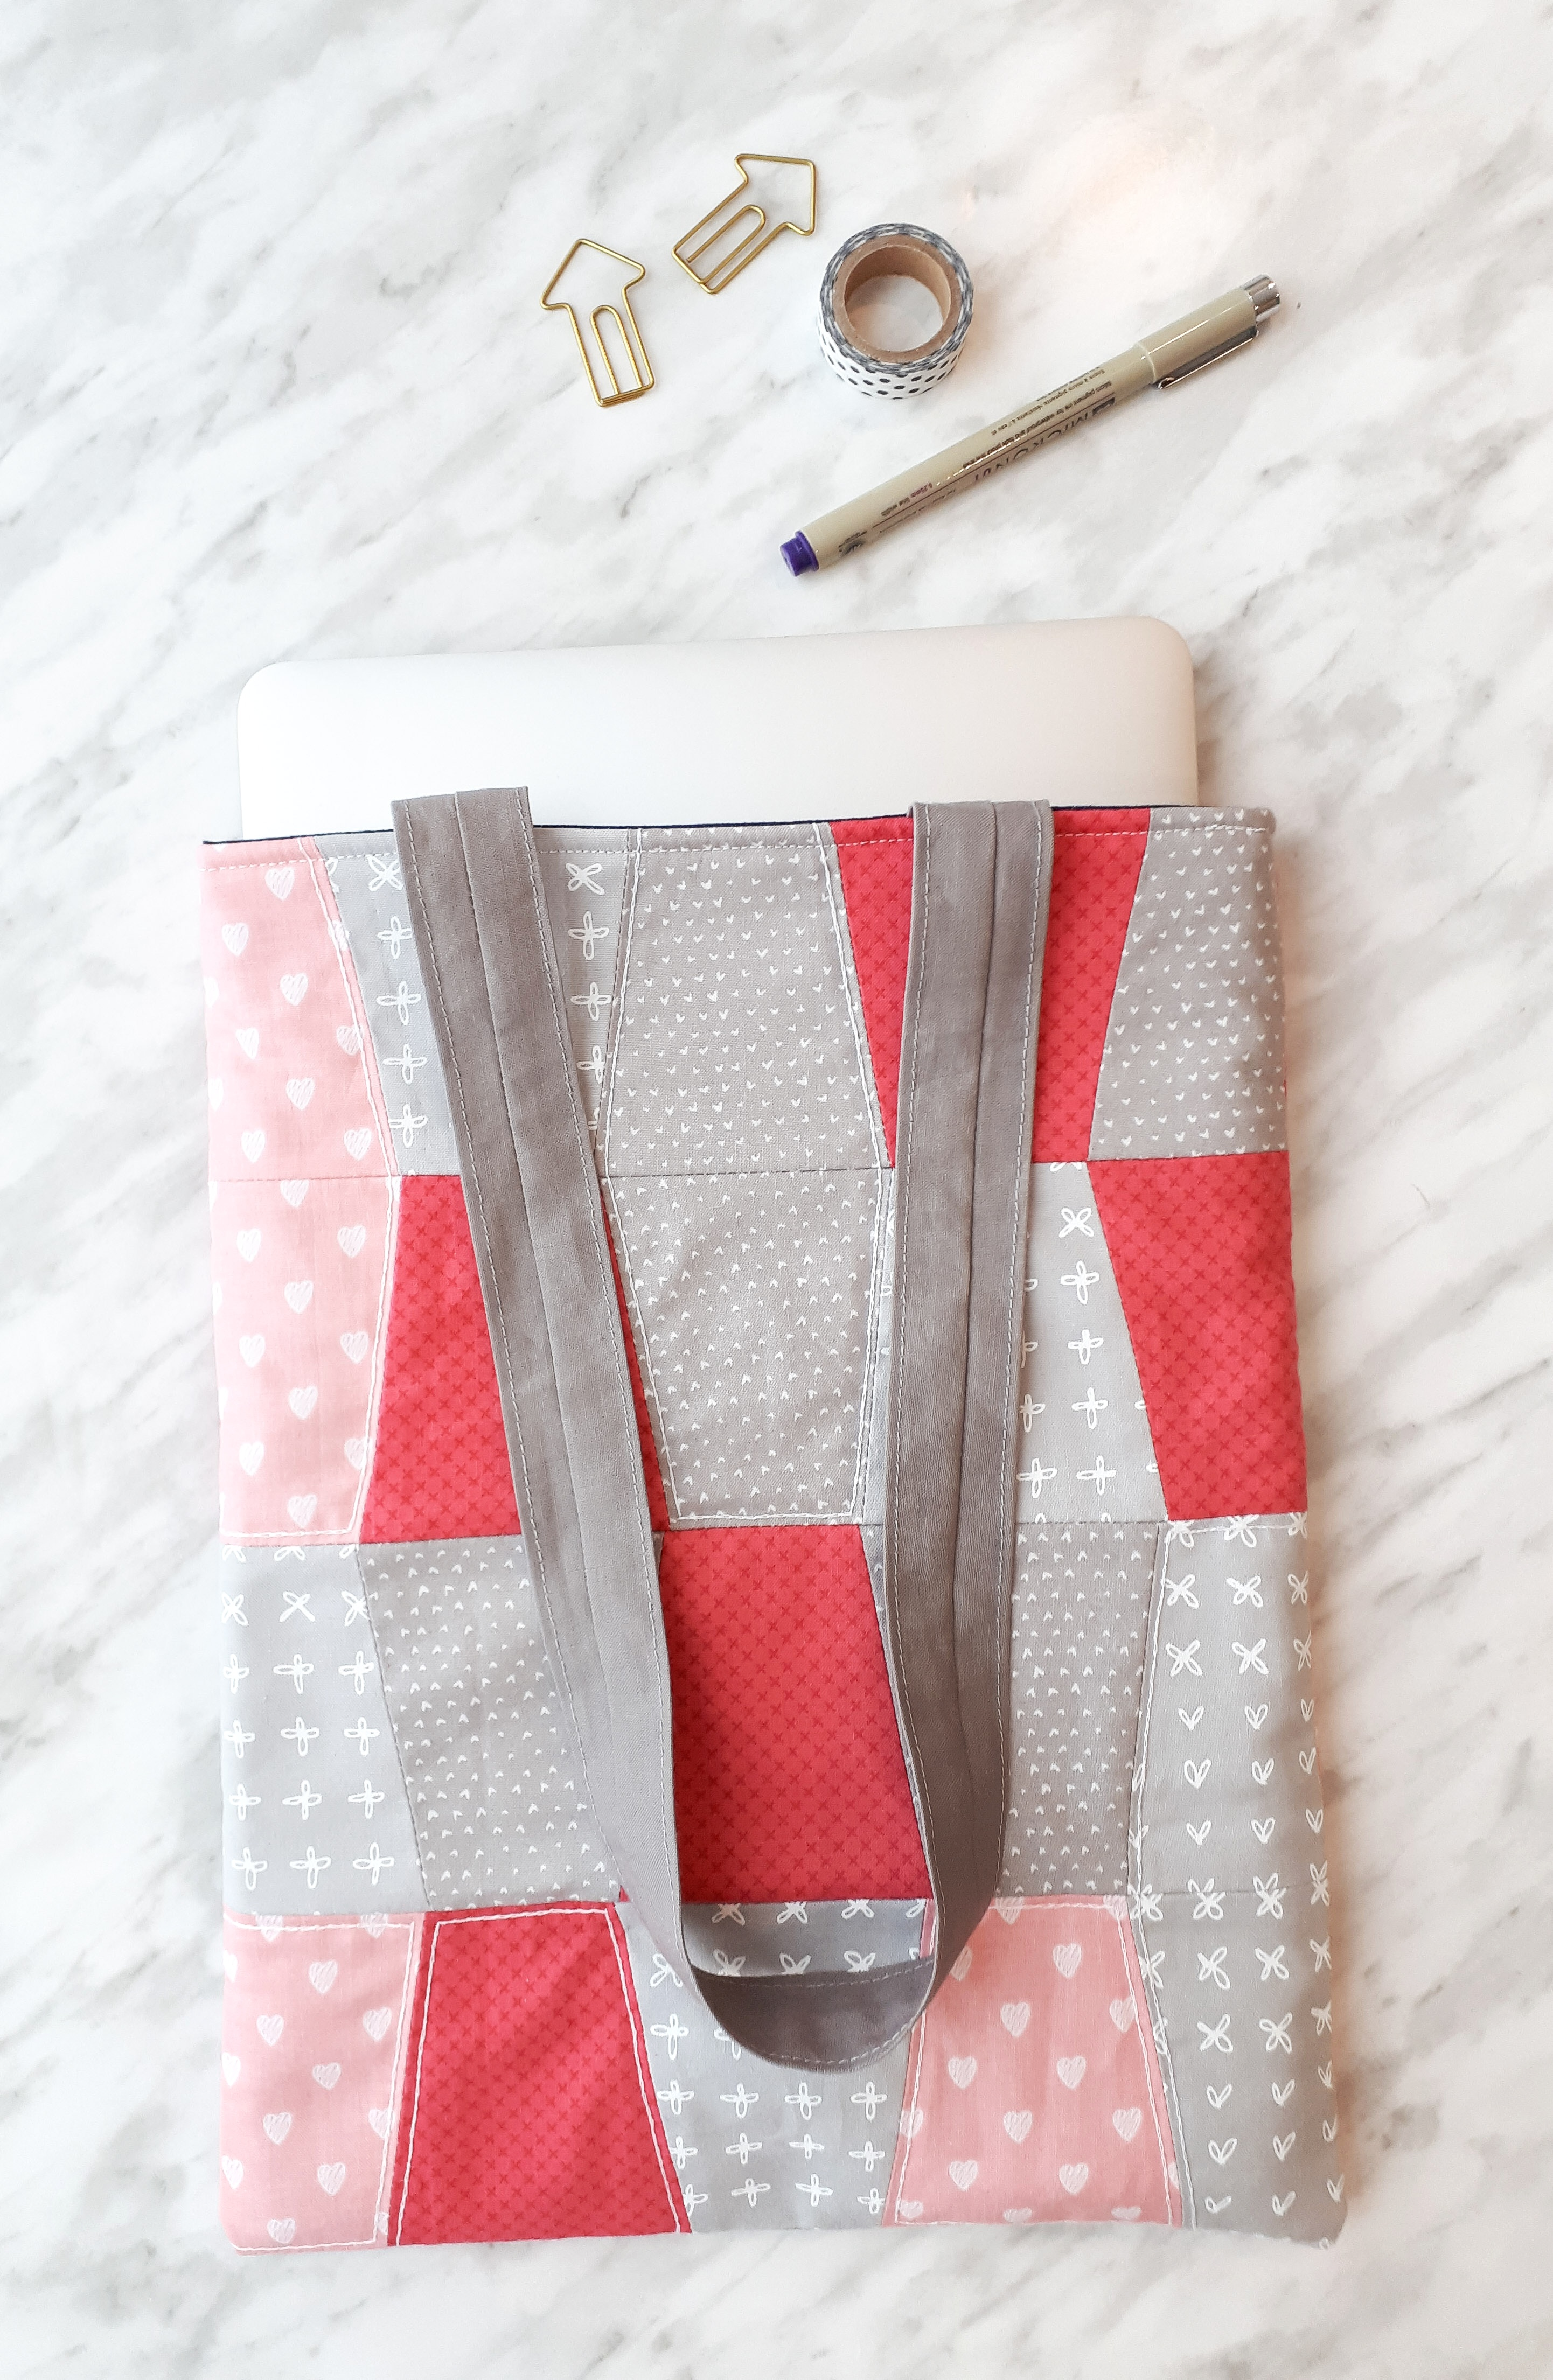 Laptop bag tutorial with free DIY instructions. Make a sweet quilted laptop sleeve to gift or keep!